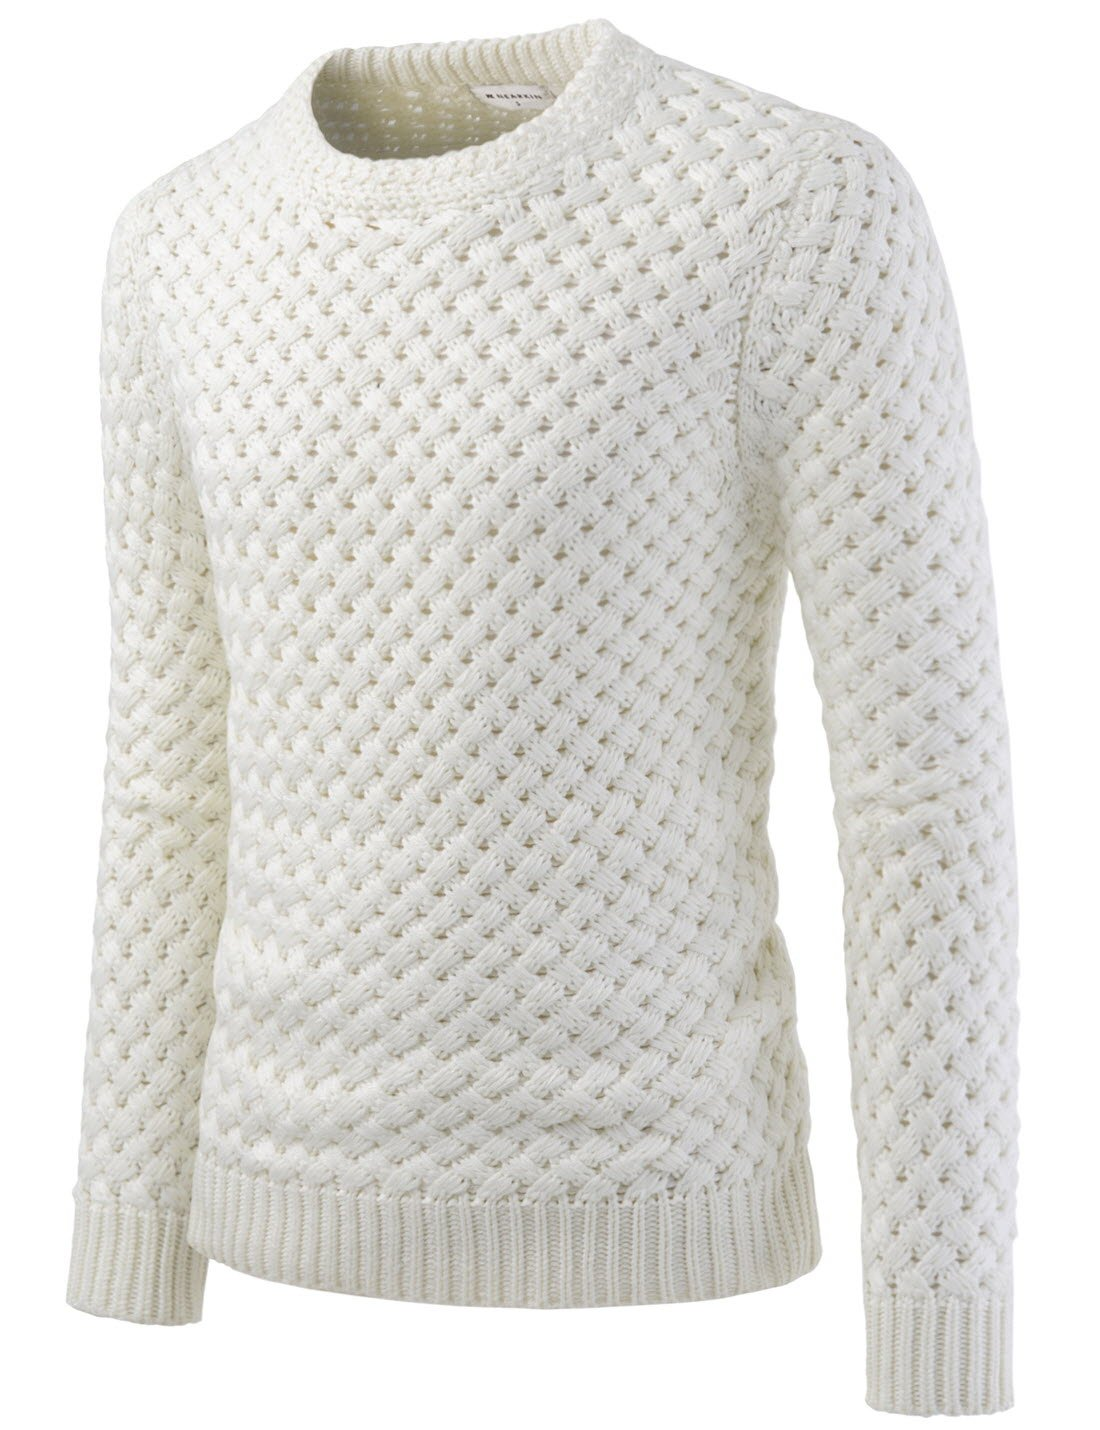 NEARKIN (NKNKKN820) Round Neck Pullover City Casual Wool Blend Knitted Sweaters IVORY US L(Tag size L)